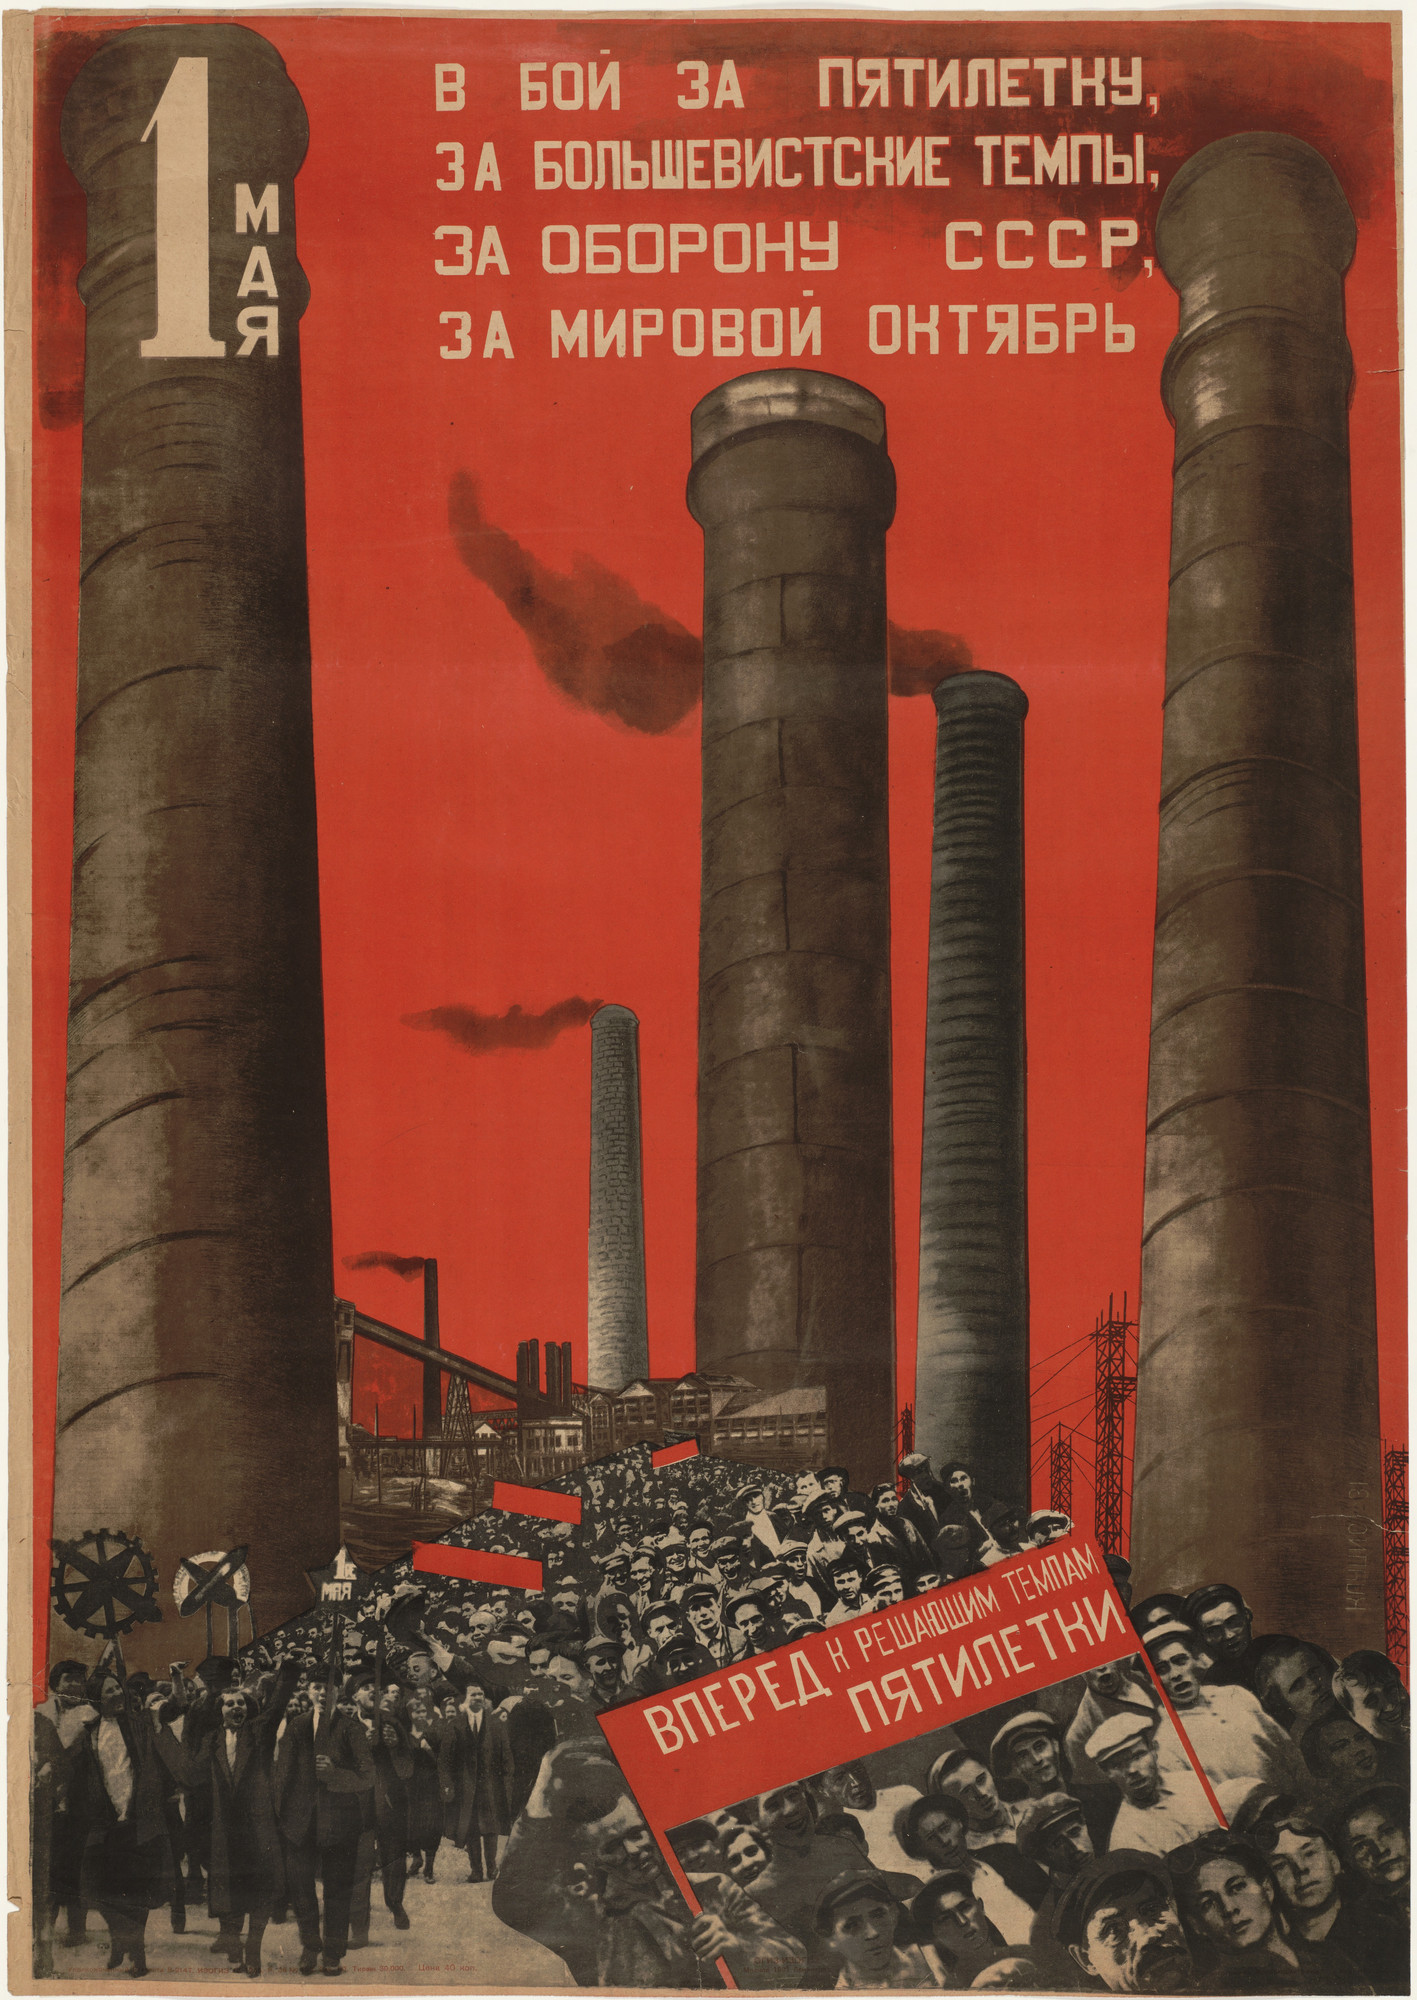 Gustav Klutsis, Sergei Senkin. May Day. We Fight For: The Five-Year Plan. For the Bolshevik Tempo. For the Armament of the USSR. For the International October [Revolution]. 1931